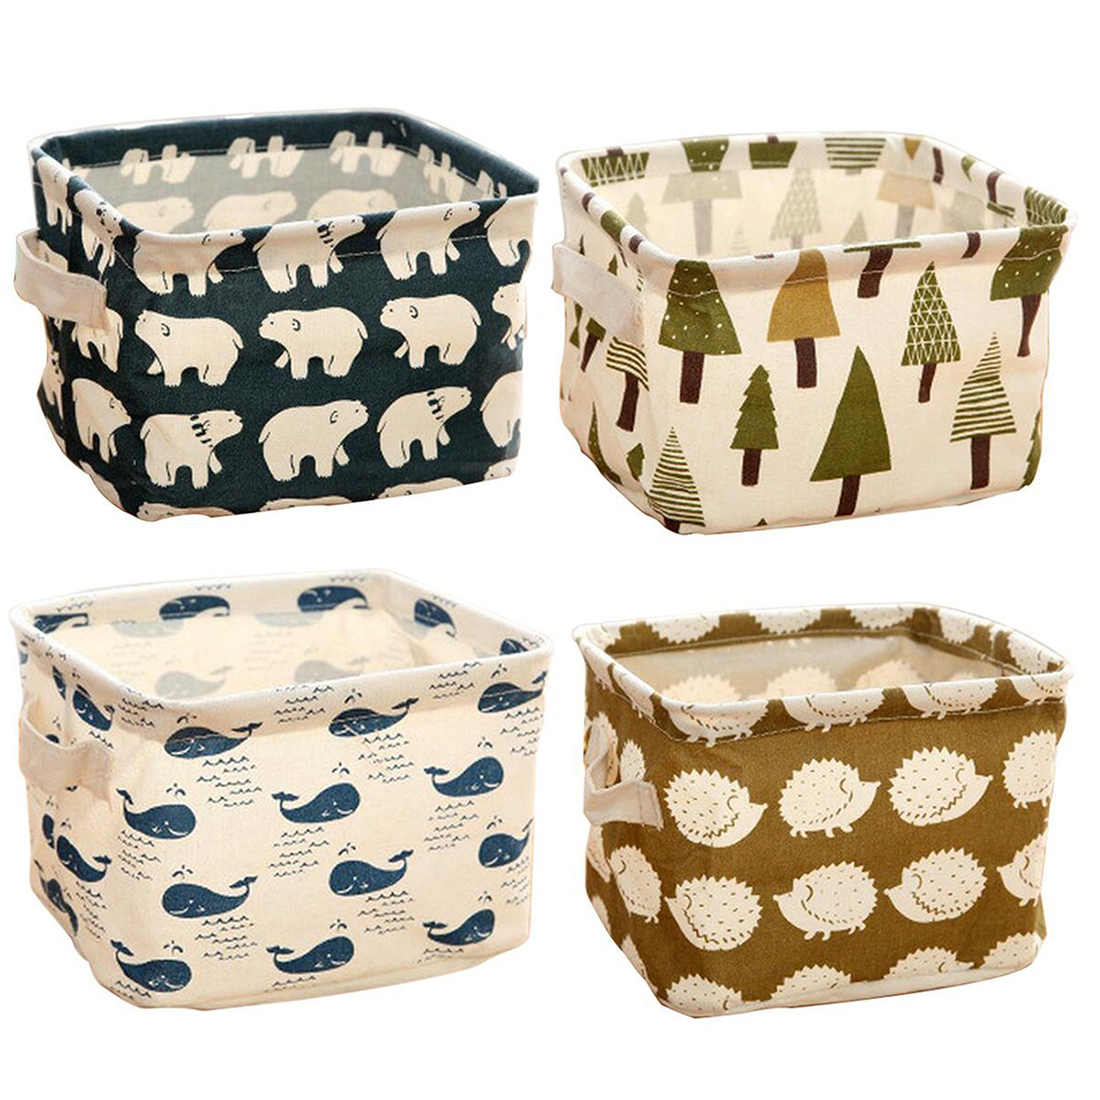 Cotton Fabric Storage Basket DIY Desktop Folding Toy Storage Box Floral Animal Jewelry Cosmetic Makeup Stationery Organizer